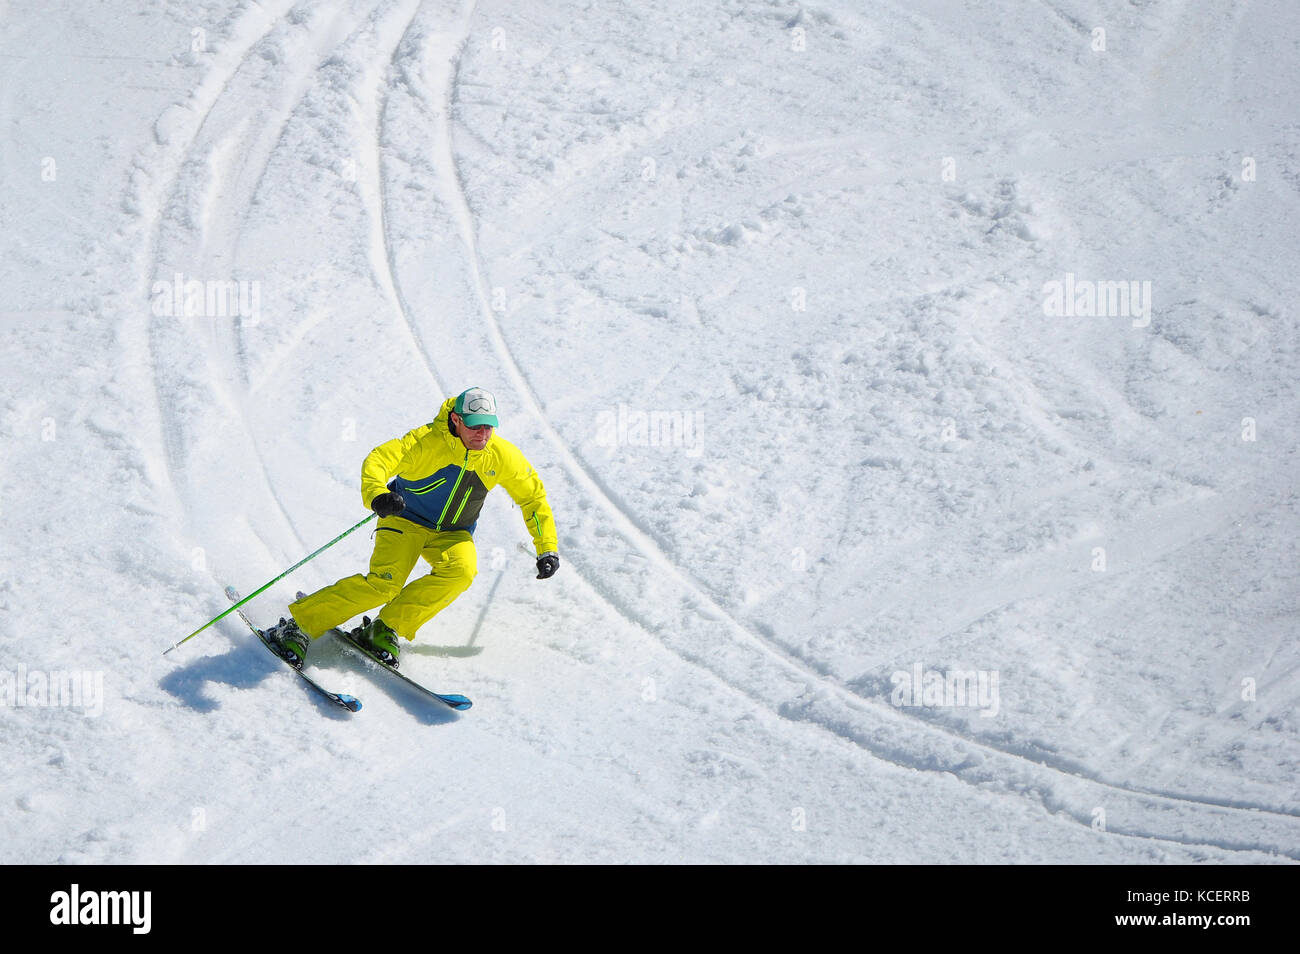 A skier carves a turn photographed from above. Stock Photo